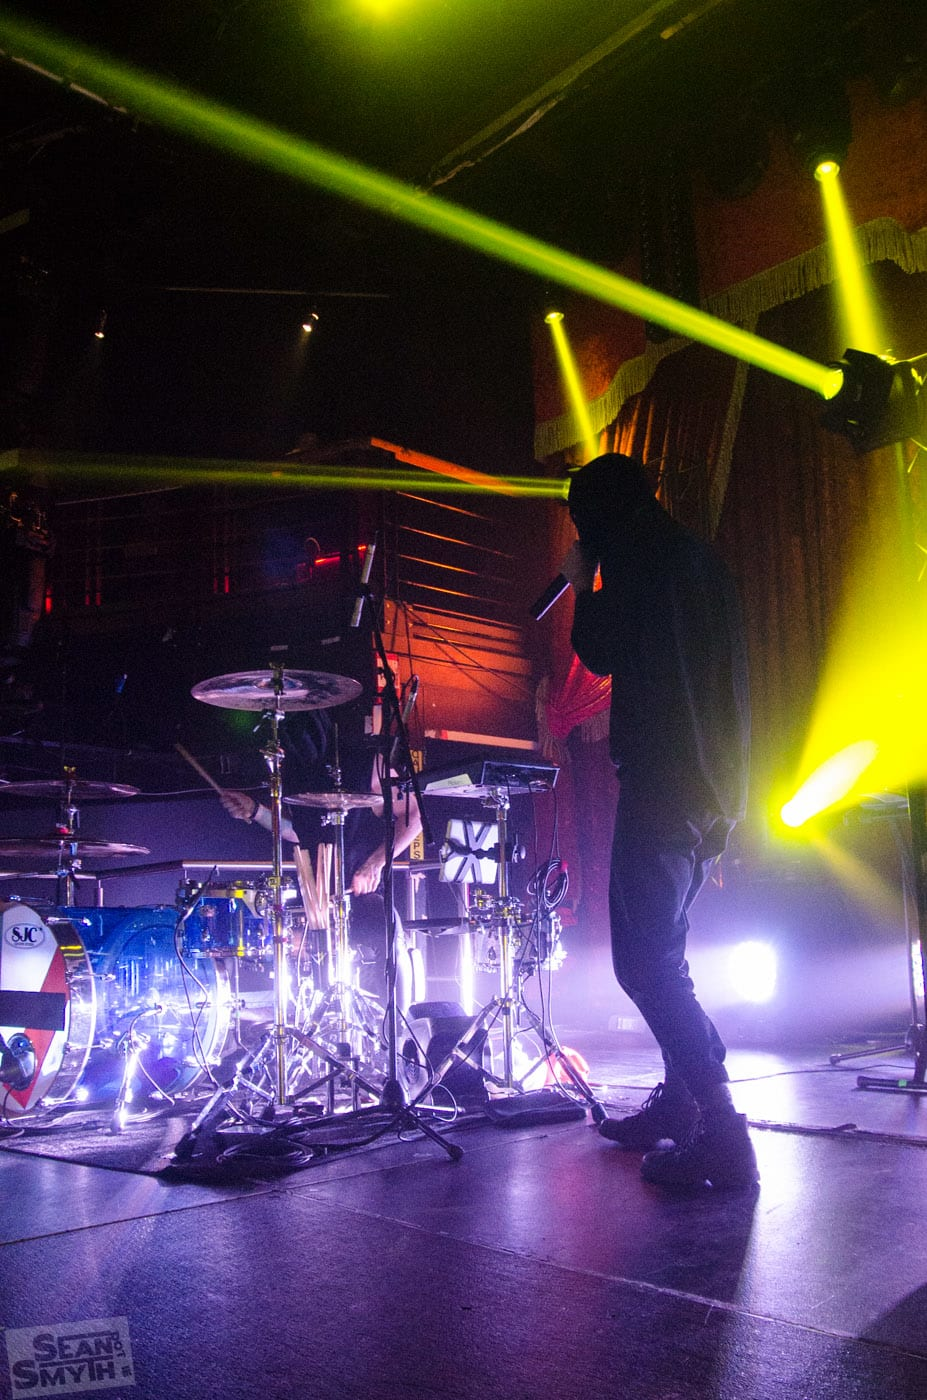 twenty-one-pilots-at-the-academy-by-sean-smyth-16-11-14-22-of-41_15621412118_o